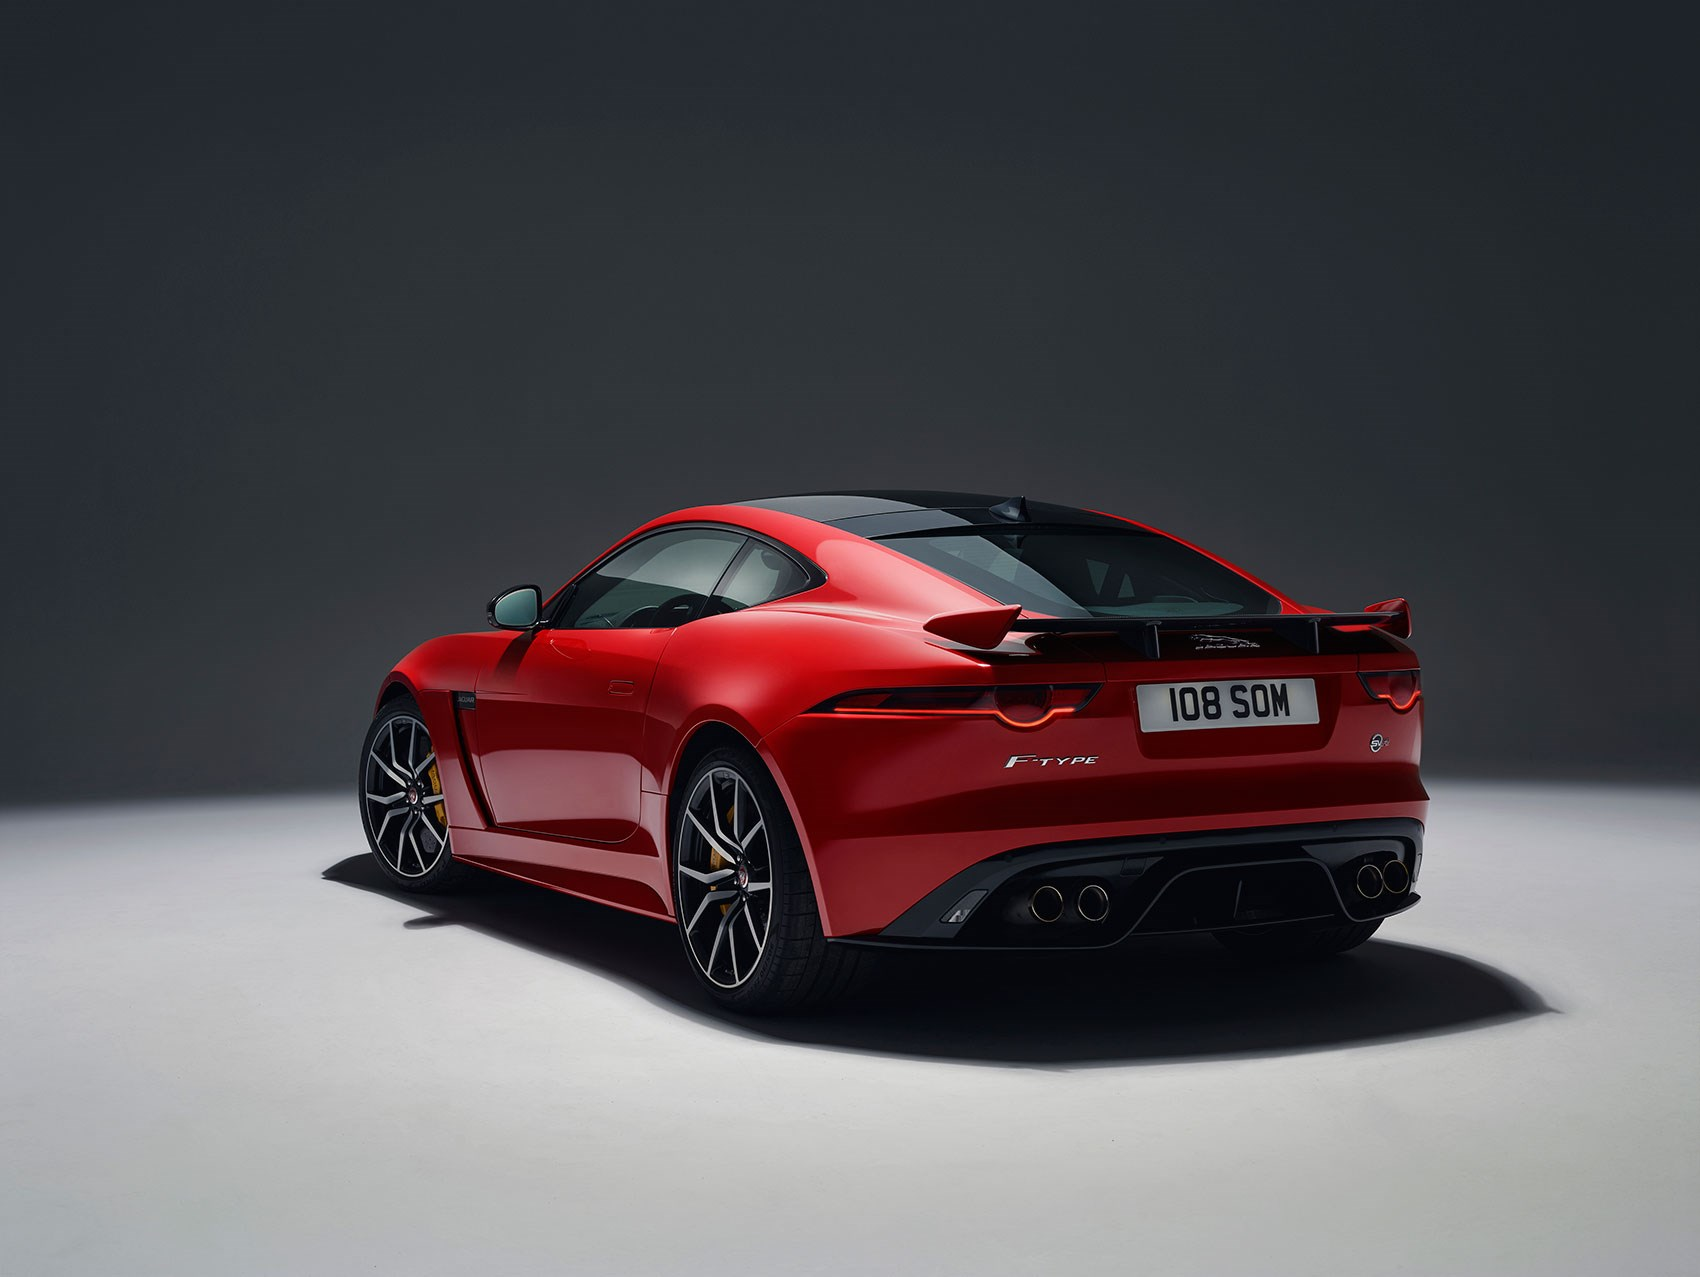 believe it or not the jag f type was launched in 2012